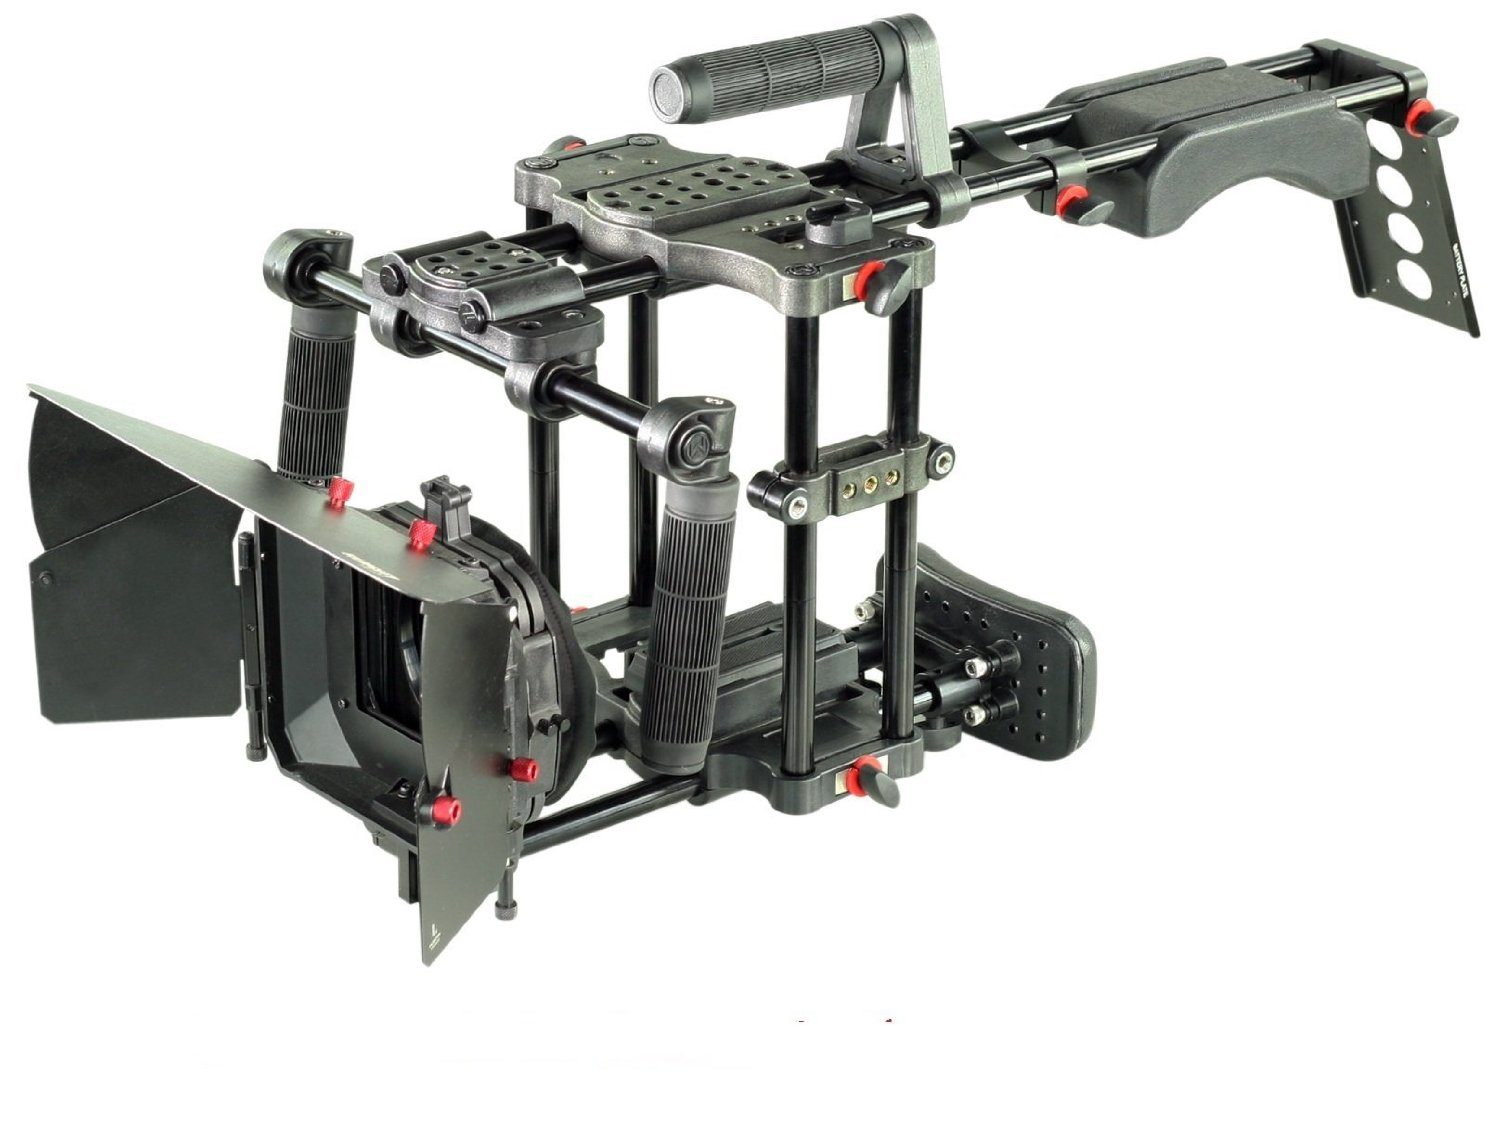 FILMCITY Power BELLY CRUZER - DSLR Shoulder Mount Support Rig Cage Matte box (FC-BC-DSR-P) Video Camera Stabilizer Kit Free Accessories